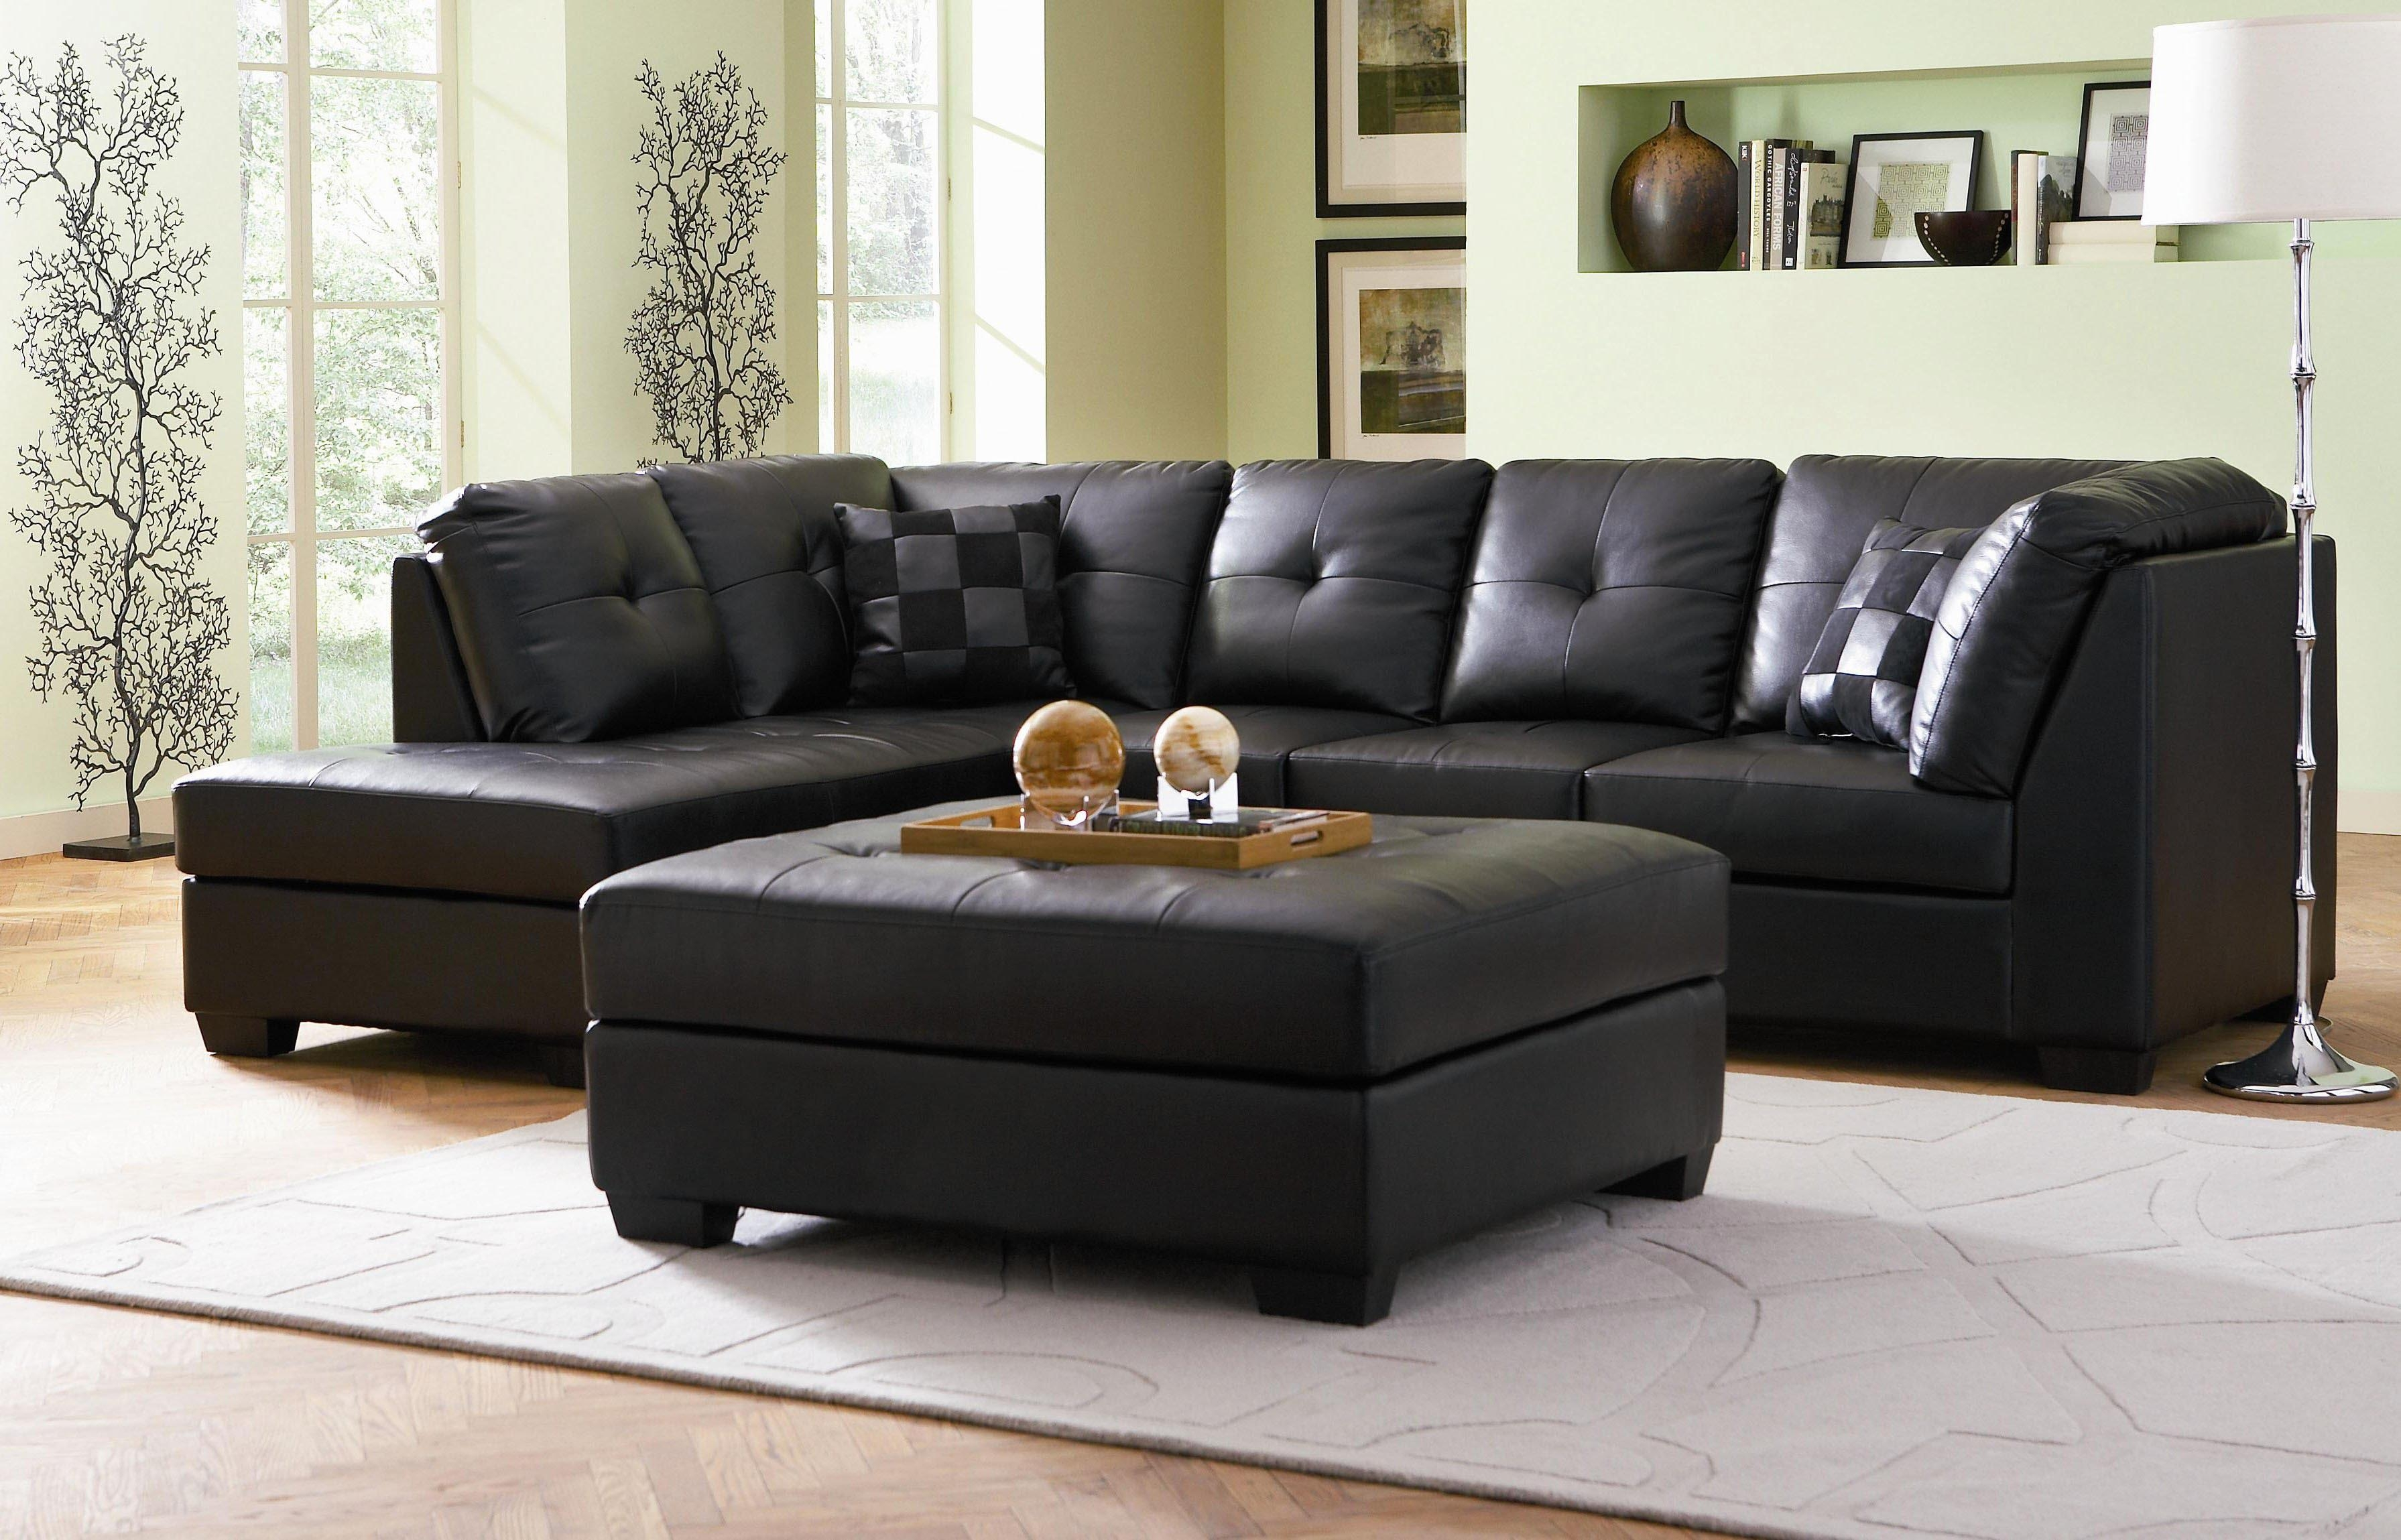 Sofas Center : Cheap Sectional Sofas For Sale Amazon Sofa Sets Pertaining To Houston Sectional Sofa (Image 10 of 20)